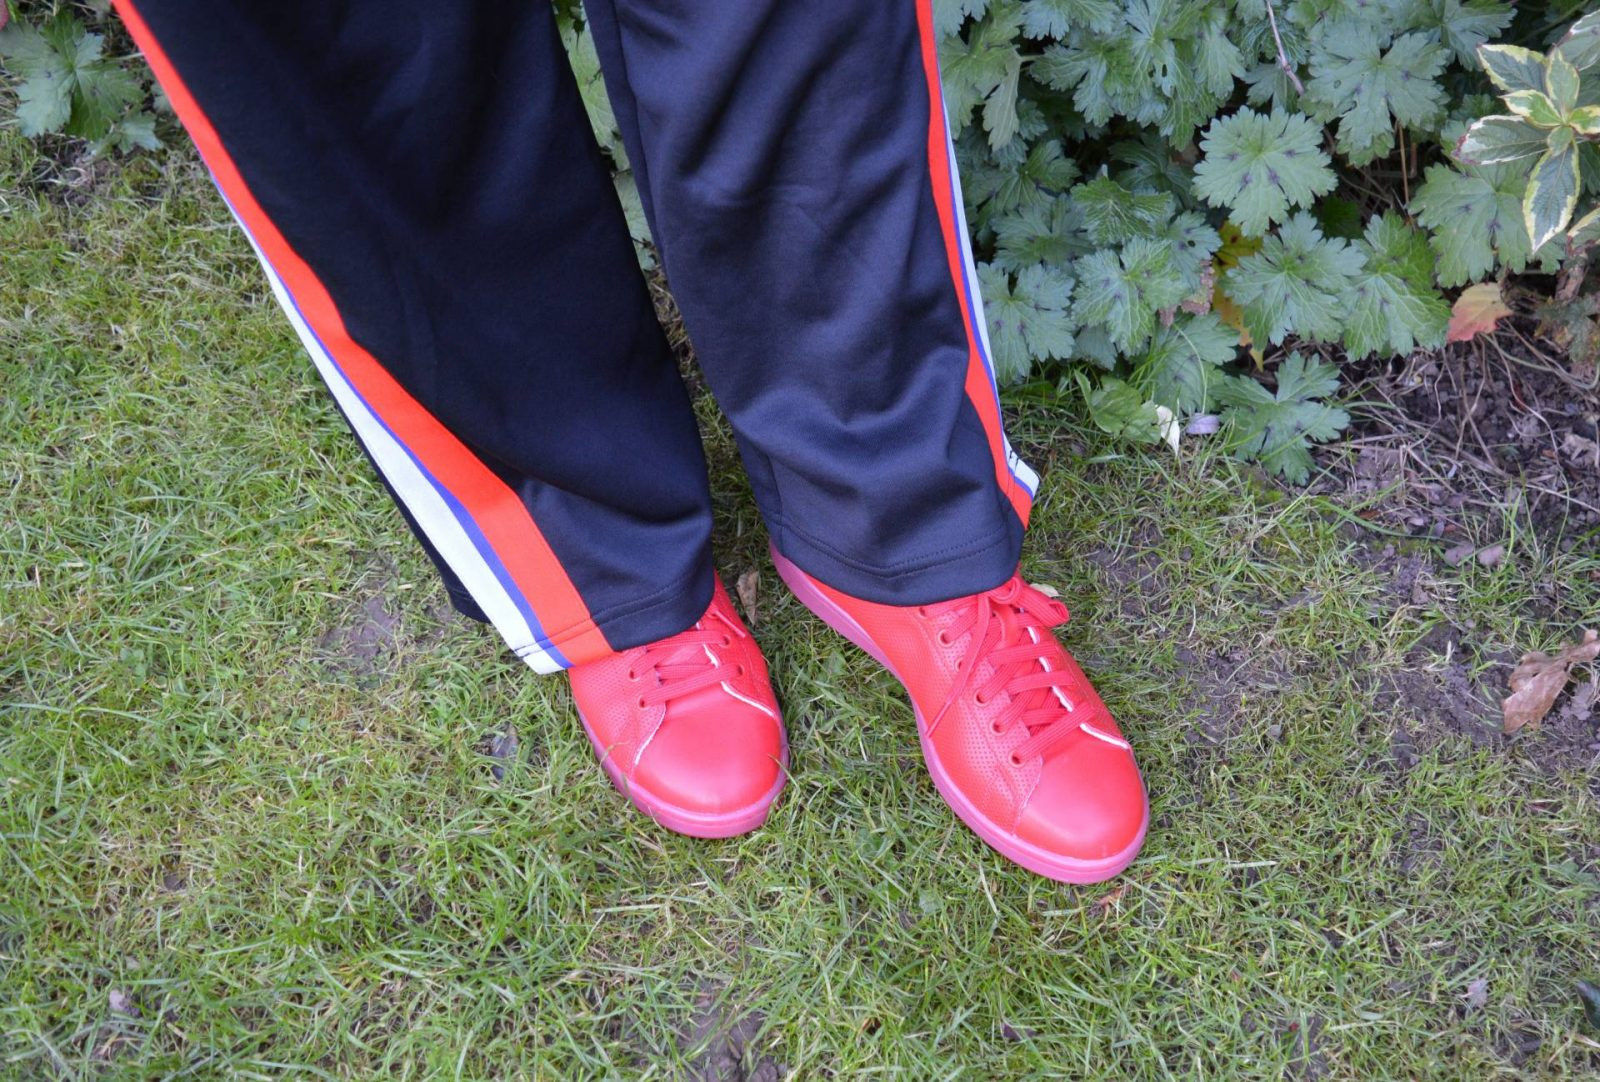 Dressing for comfort in athleisure, red Adidas Stan Smiths